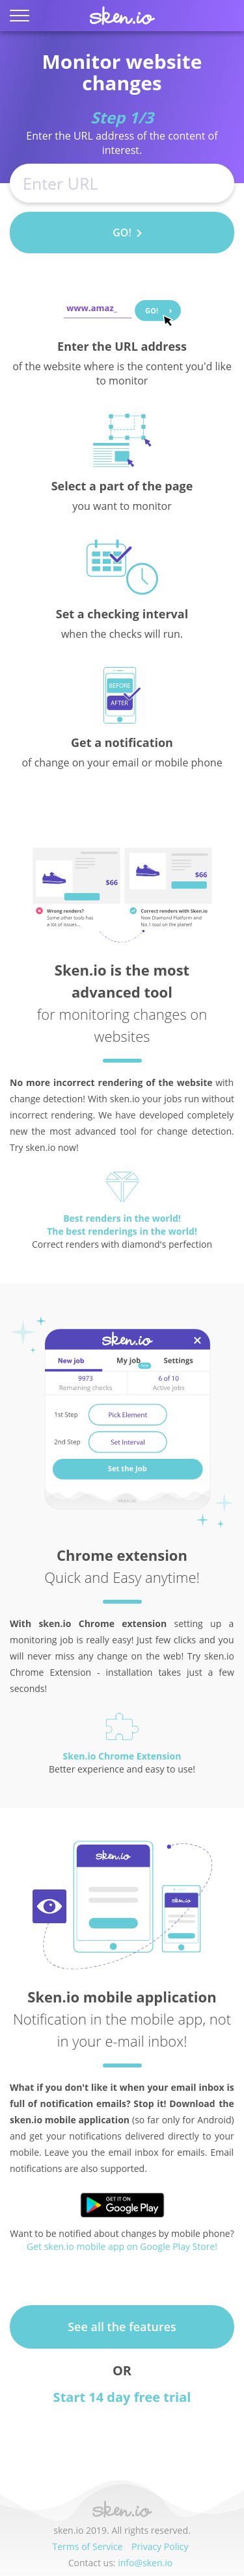 Example of Design for Computers & Electronics, Mobile Landing Page by sken.io | Mobile Landing Page Design